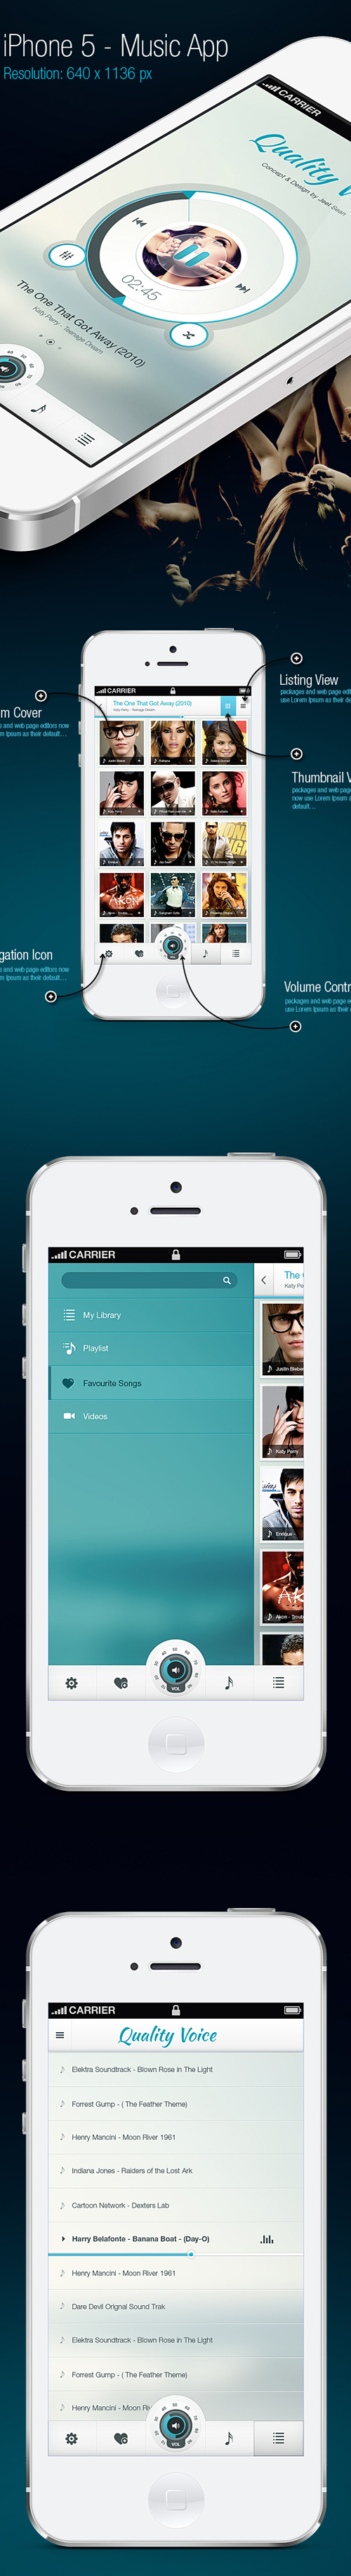 Quality Voice - Mobile App UI Design Concepts to Boost User Experience